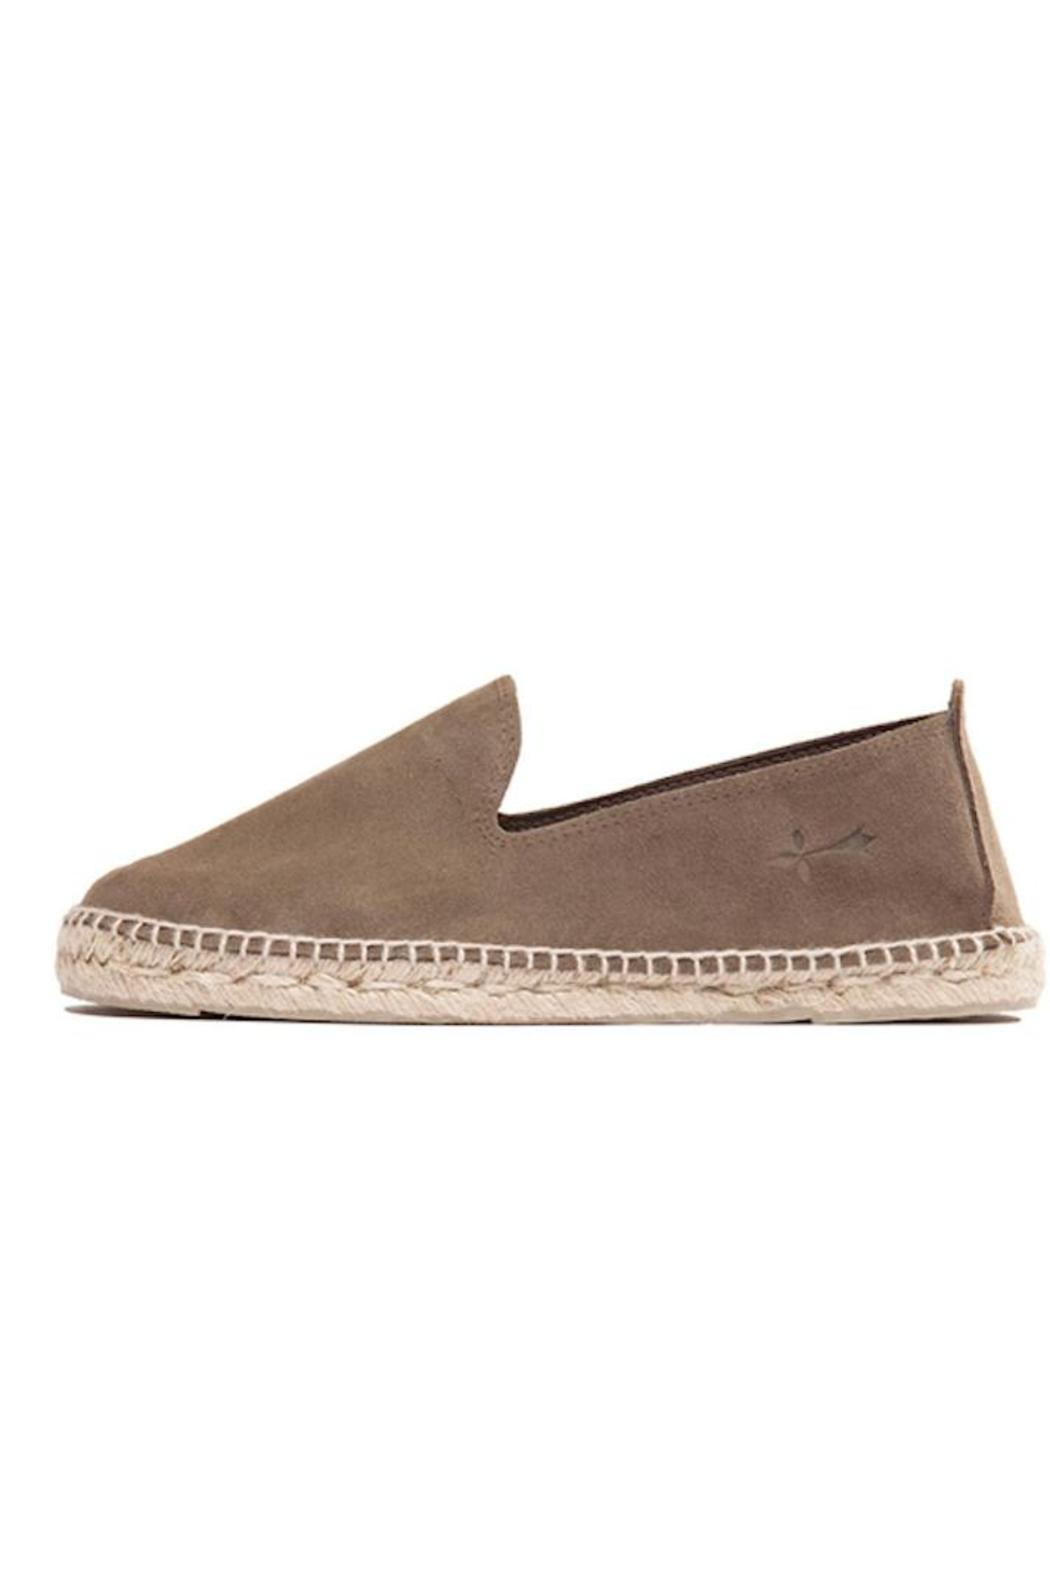 1c484f7fd83 Manebi Hamptons Suede Espadrille from Pennsylvania by Jasmin ...